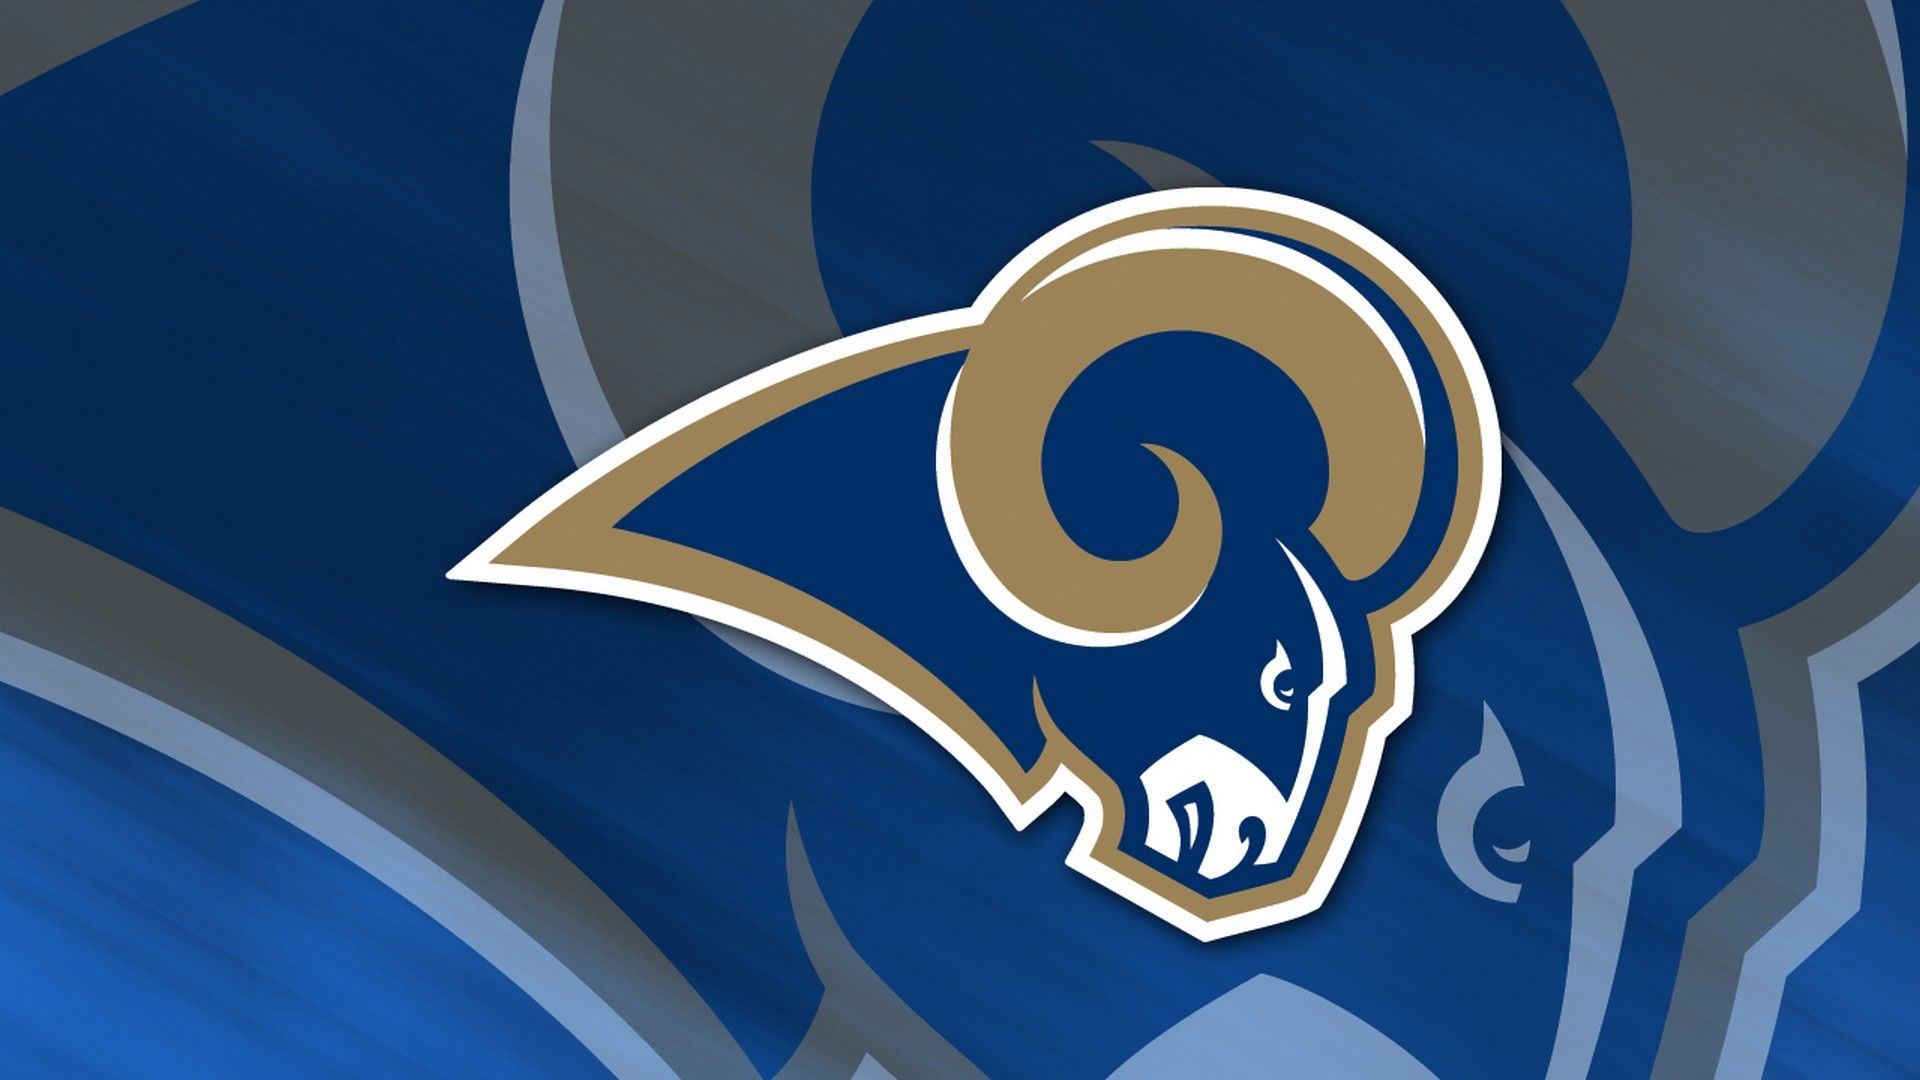 Hd Los Angeles Rams Backgrounds 2020 Nfl Football Wallpapers St Louis Rams Nfl Teams Logos Nfl Football Wallpaper